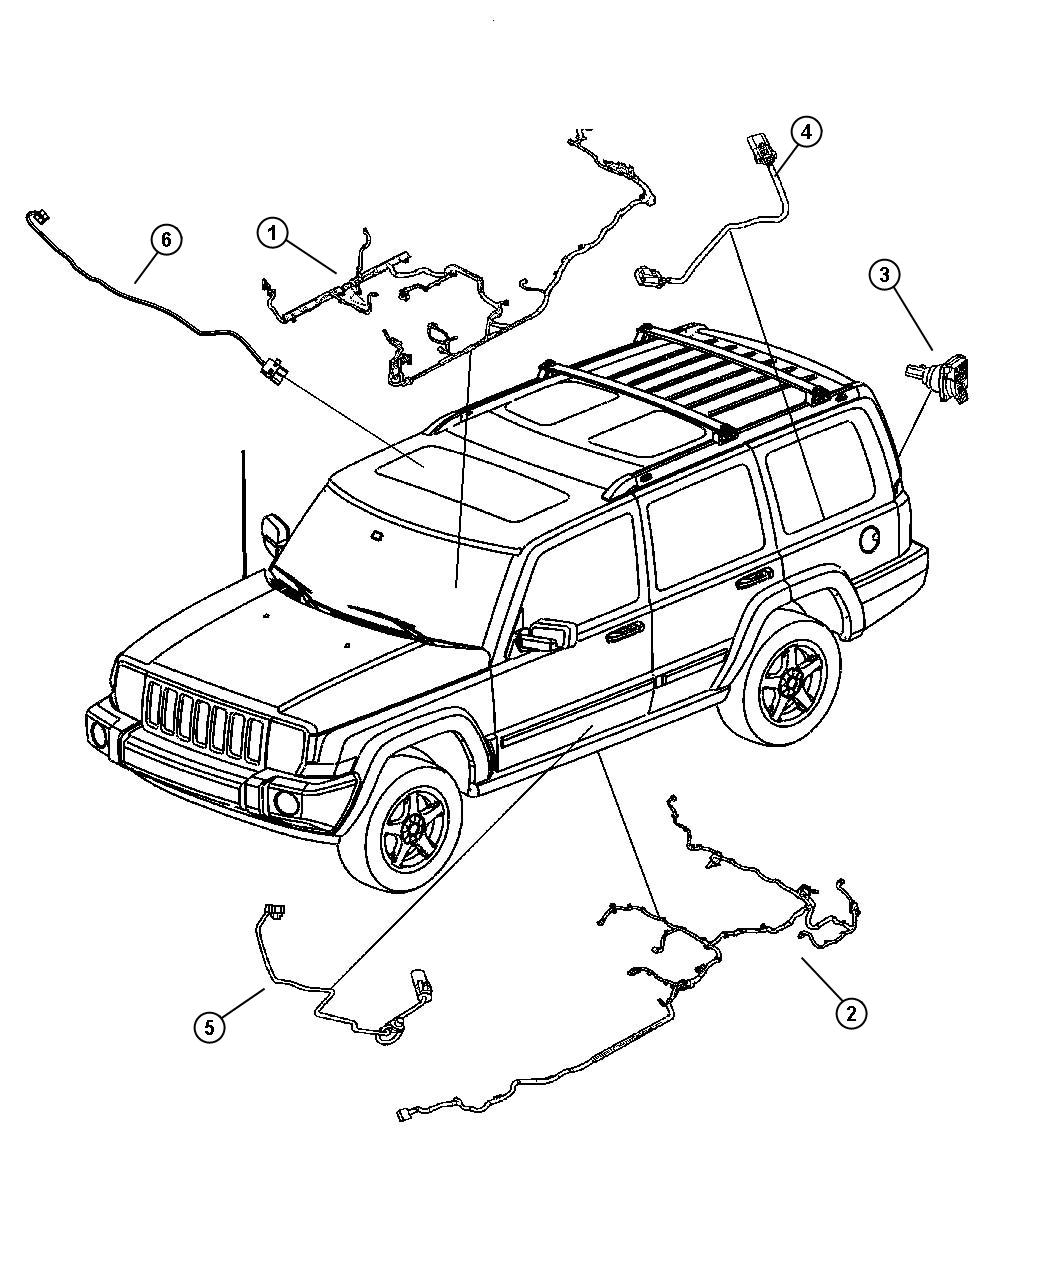 Oem Jeep Commander Wiring Diagrams Jeep Auto Wiring